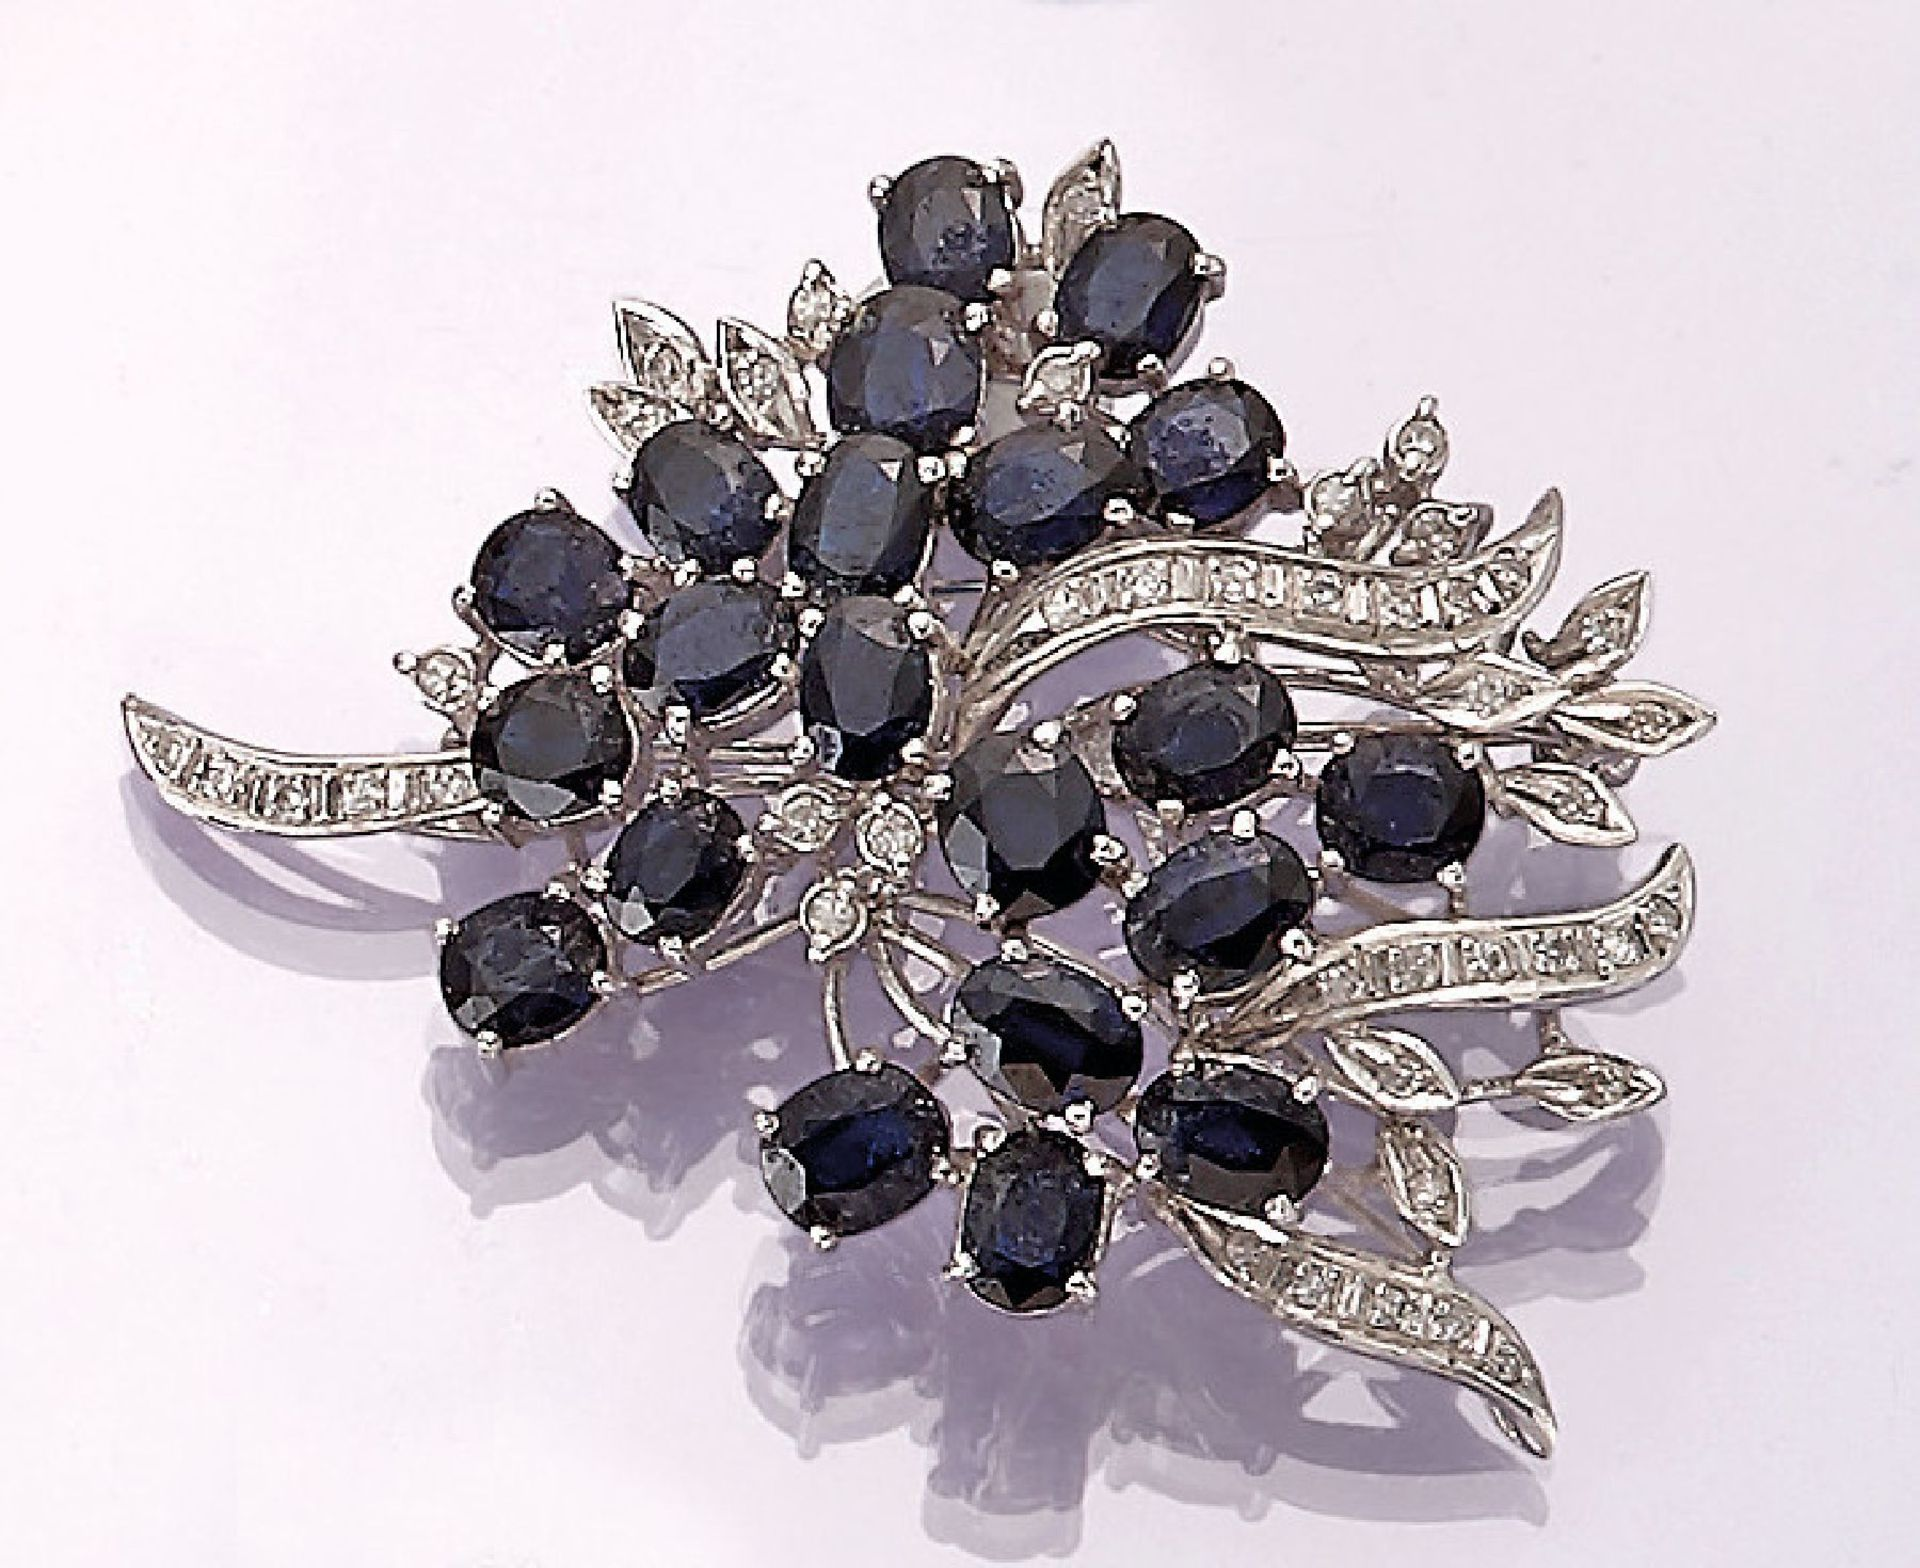 Los 31553 - 14 kt gold brooch with sapphires and diamonds , WG 585/000, floral design, oval bevelled sapphires